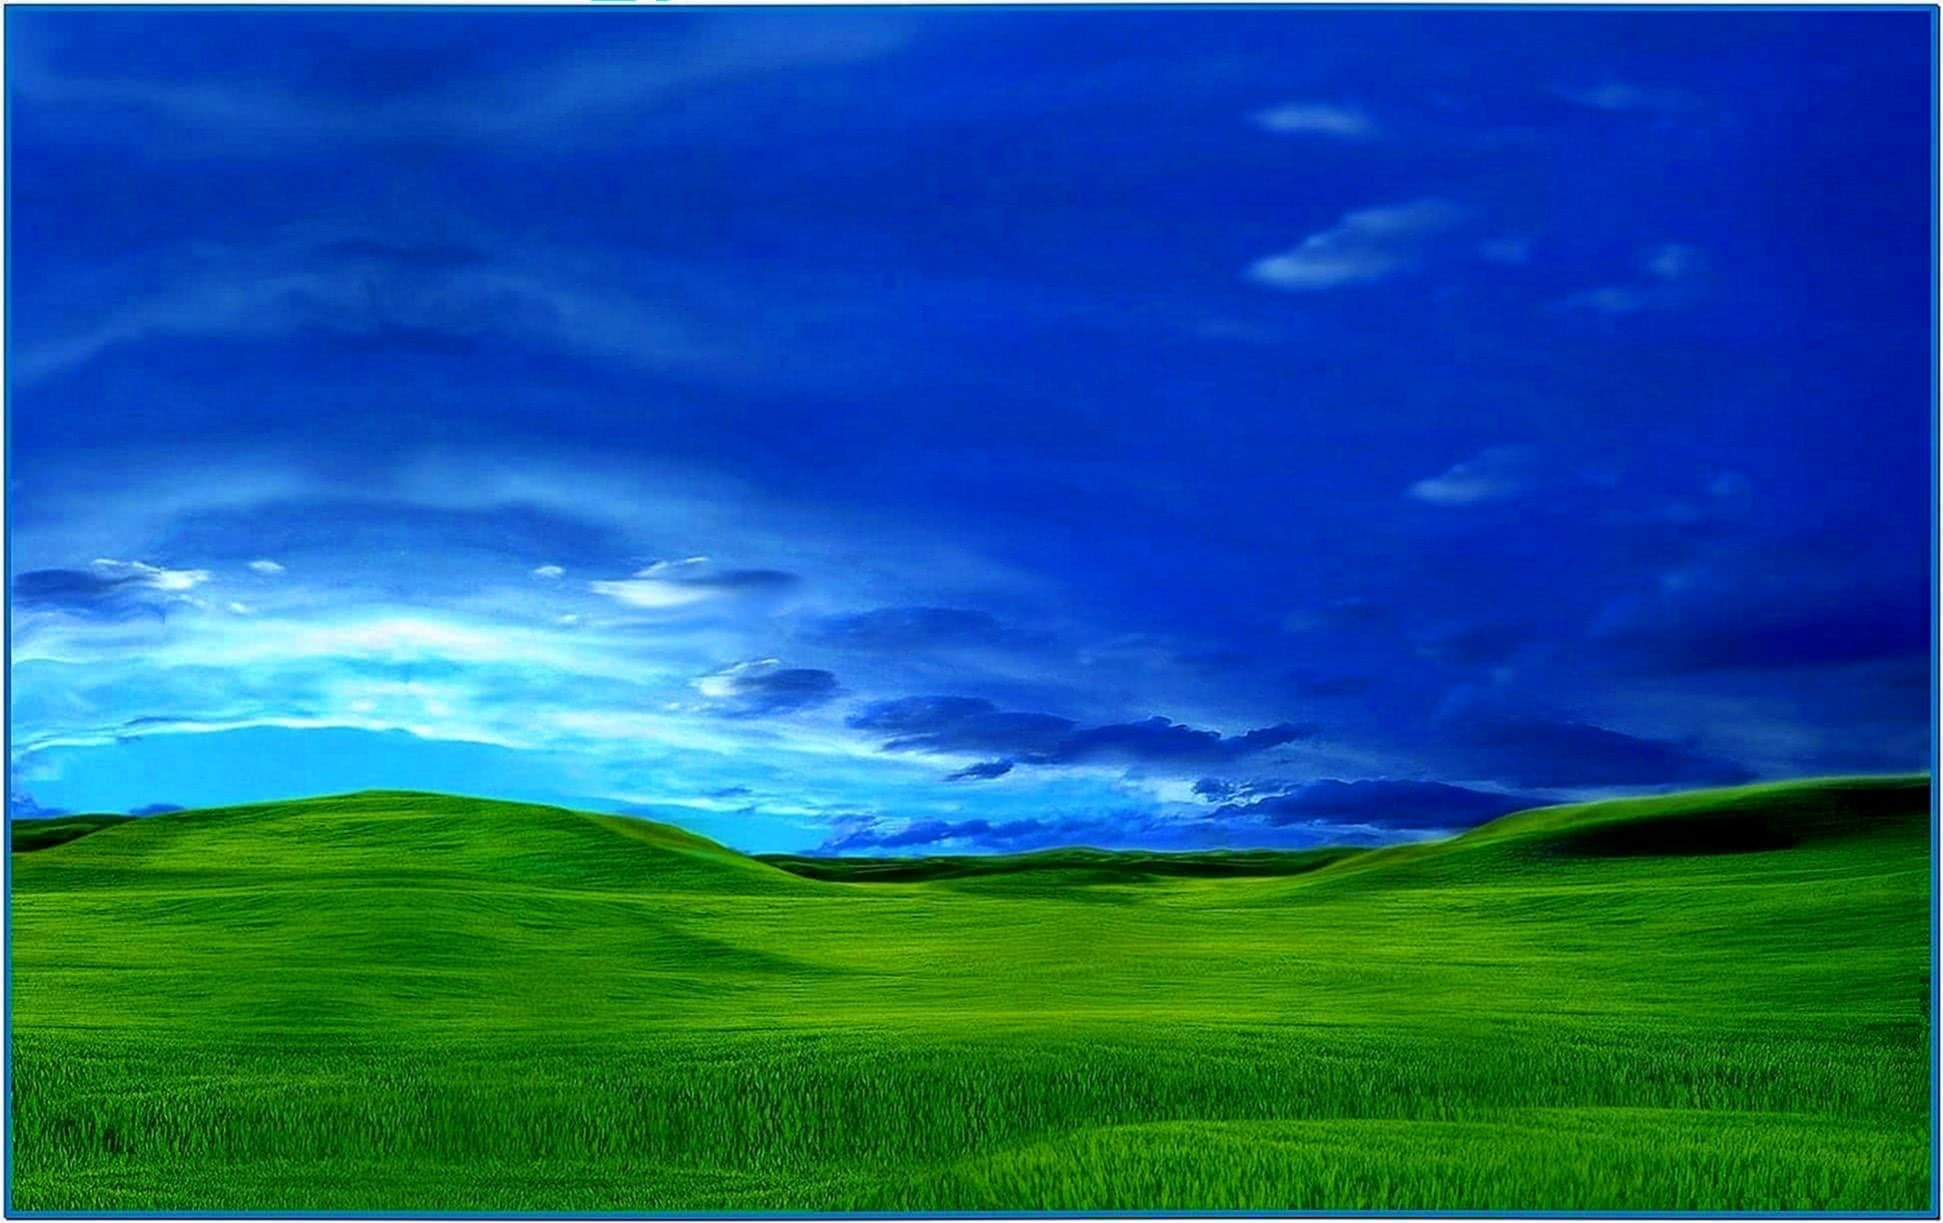 screensaver xp free download - photo #1